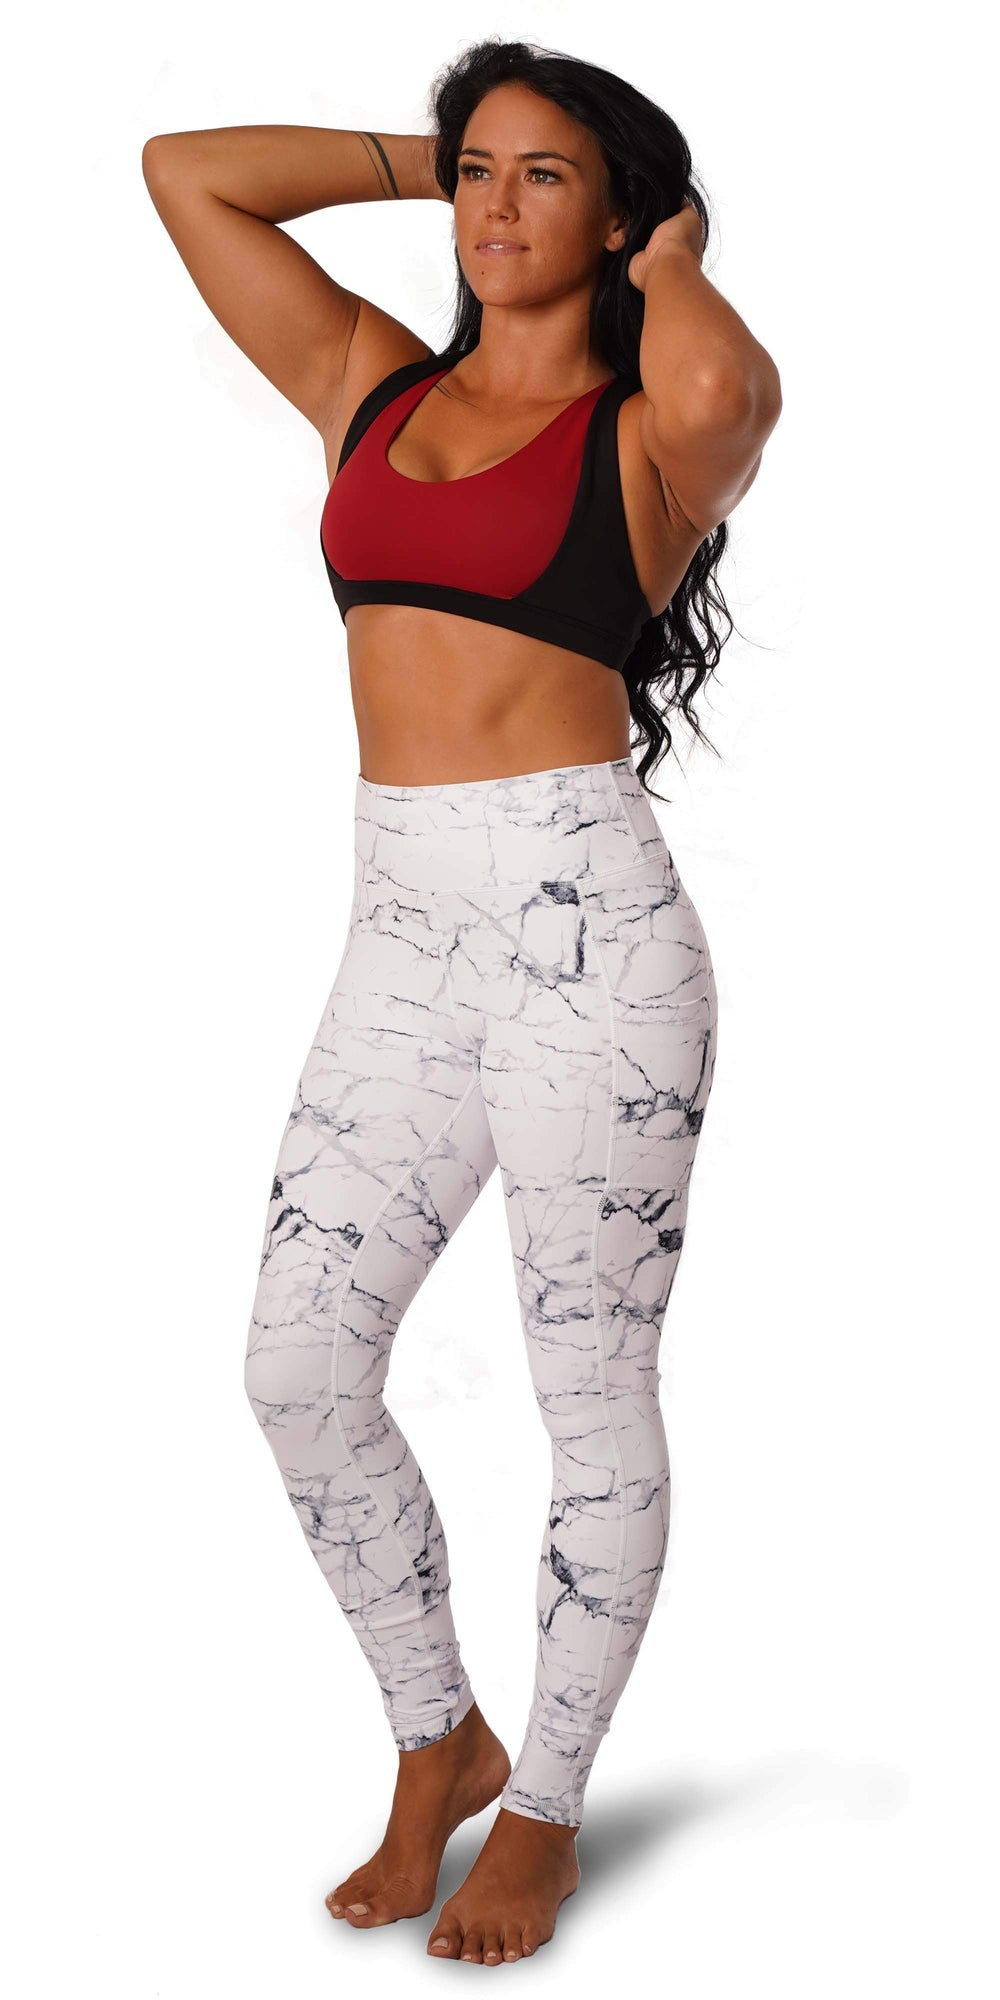 OFF THE POLE Iconic Leggings - White Marble